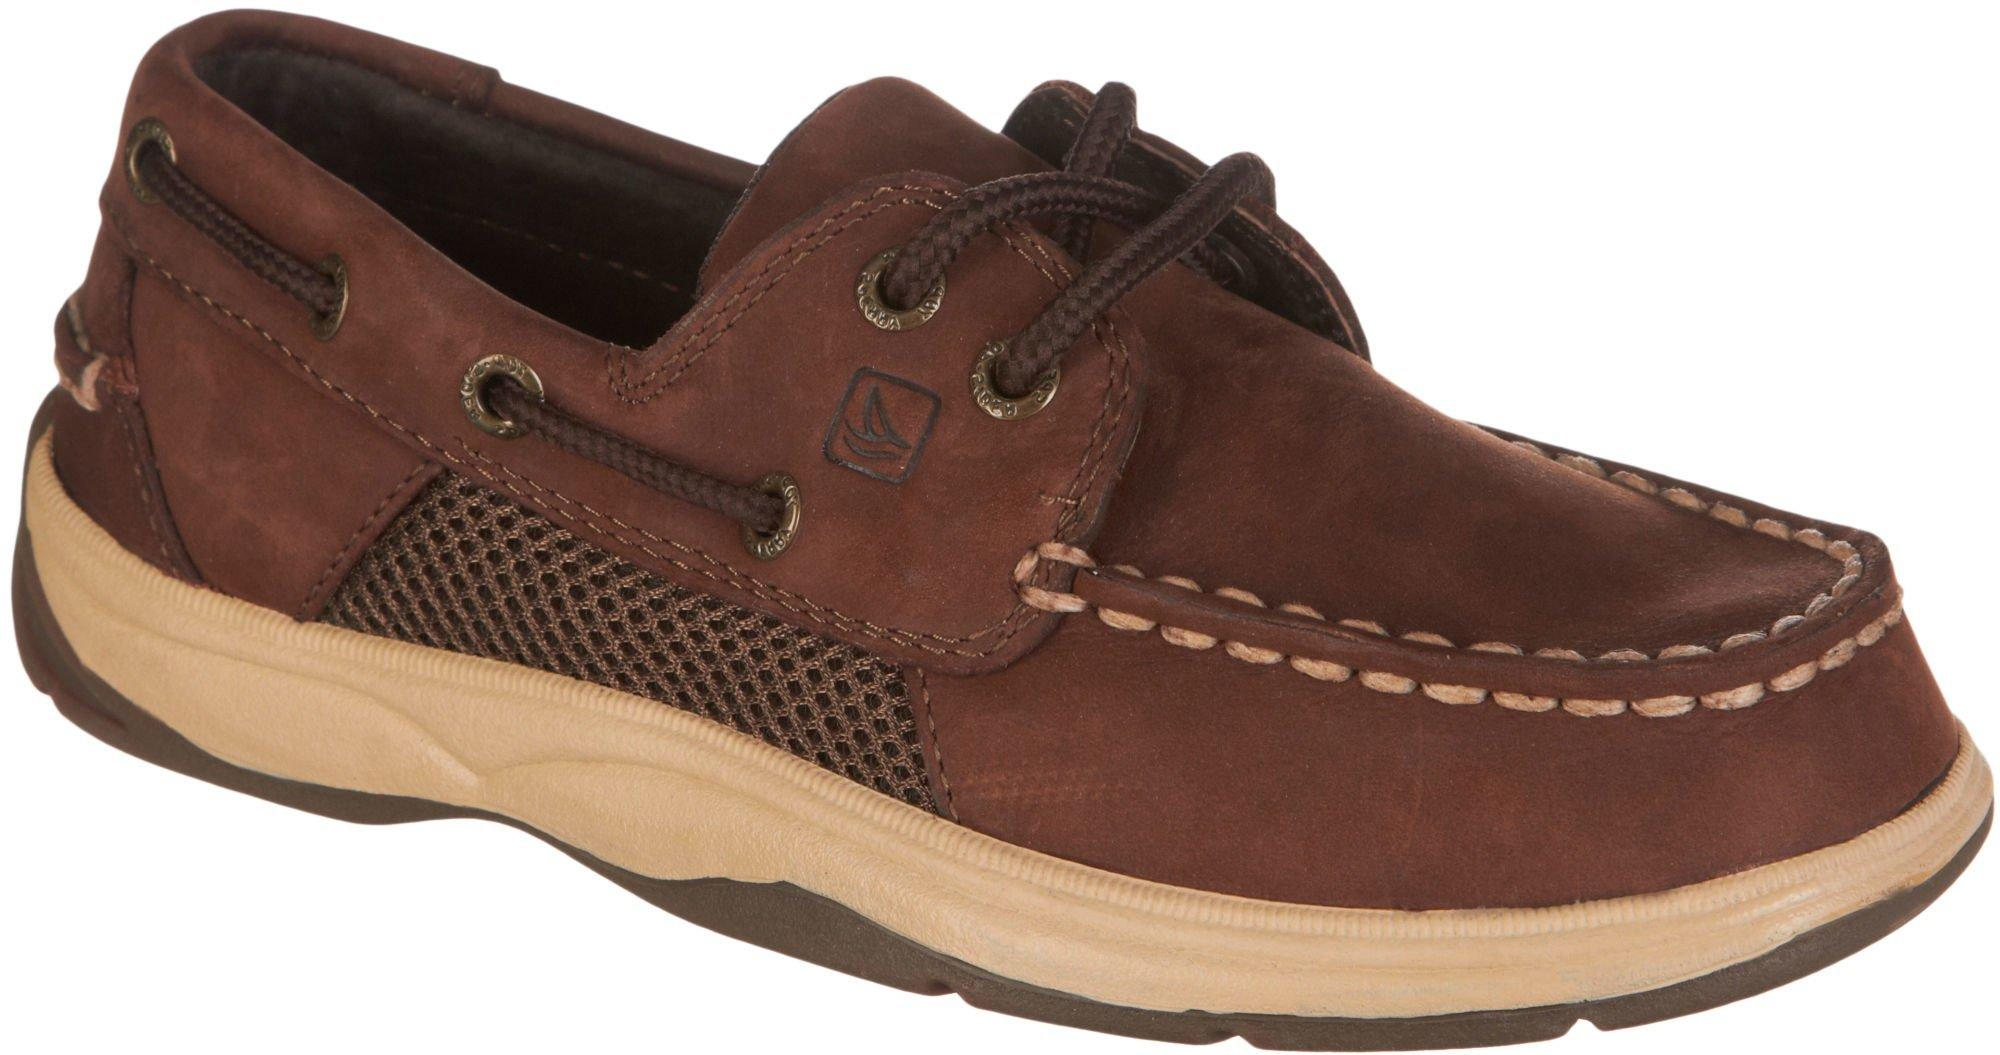 Sperry Intrepid H & L Boys Boat Shoes Deals